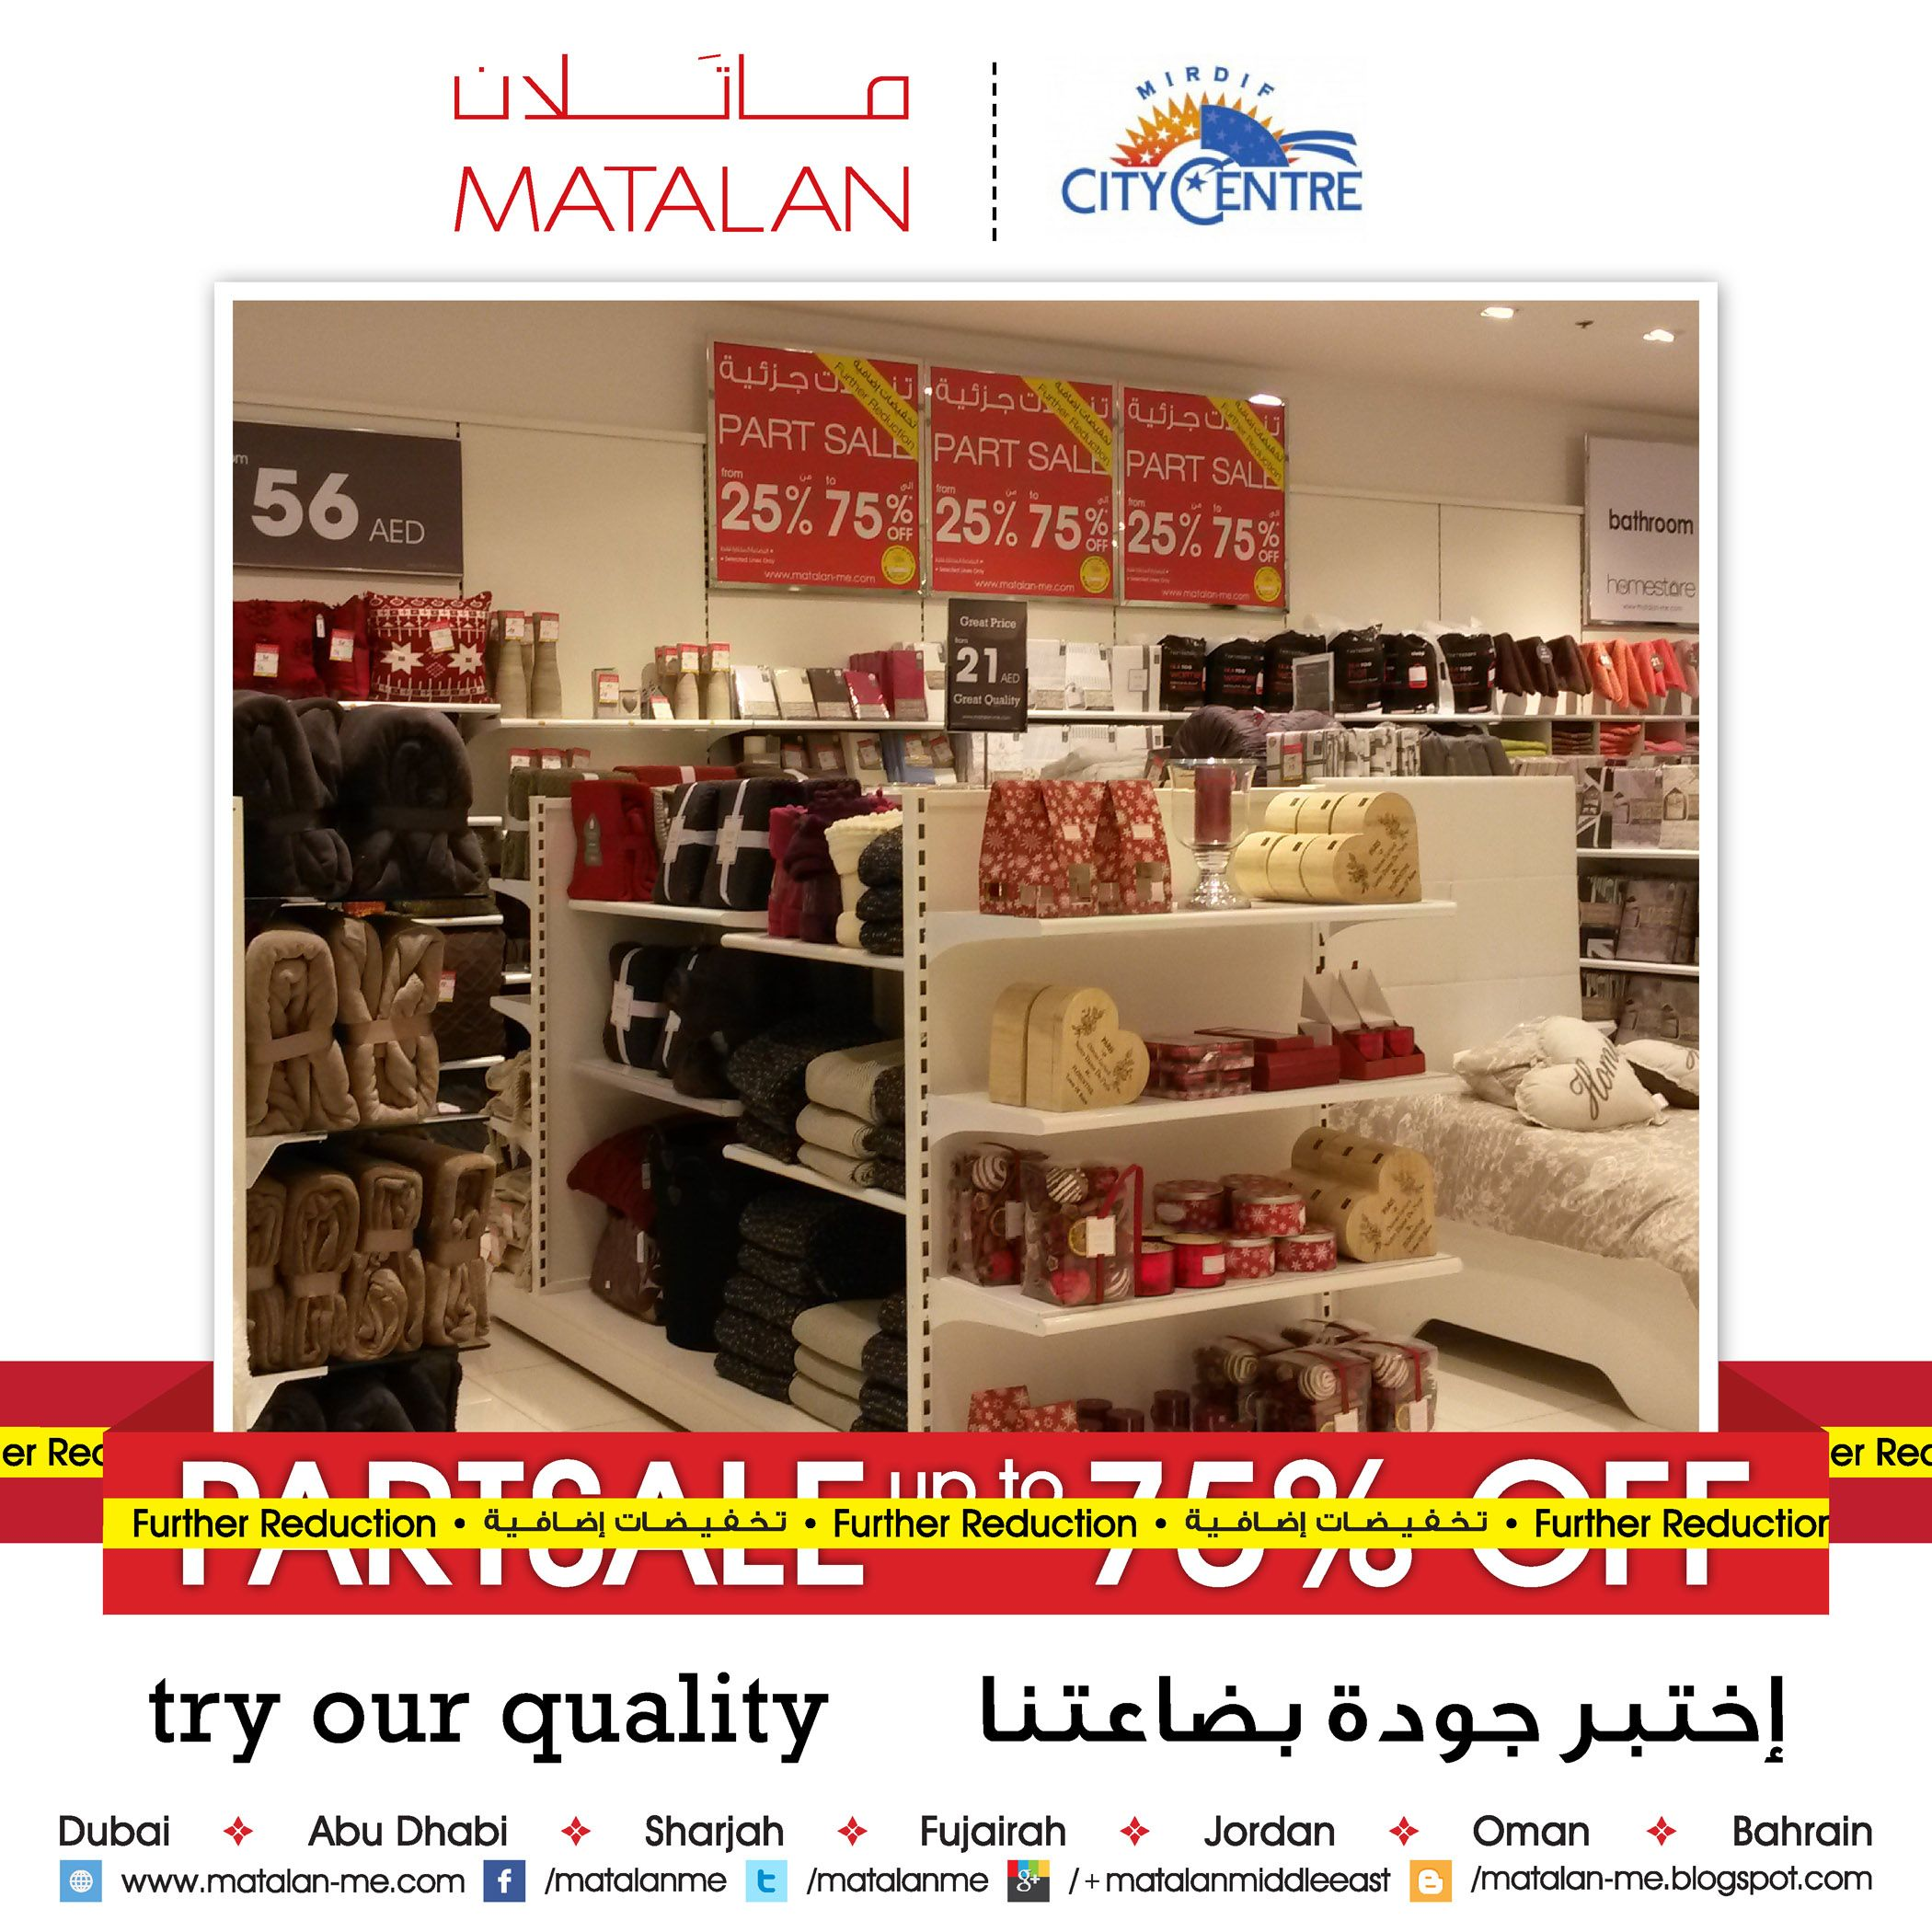 Shop For Great Buys Get Up To 75 Off On Selected Items At Matalan Mirdif City Centre Hurry Whilst Stocks Last Tel No 971 Abu Dhabi Fujairah Sharjah